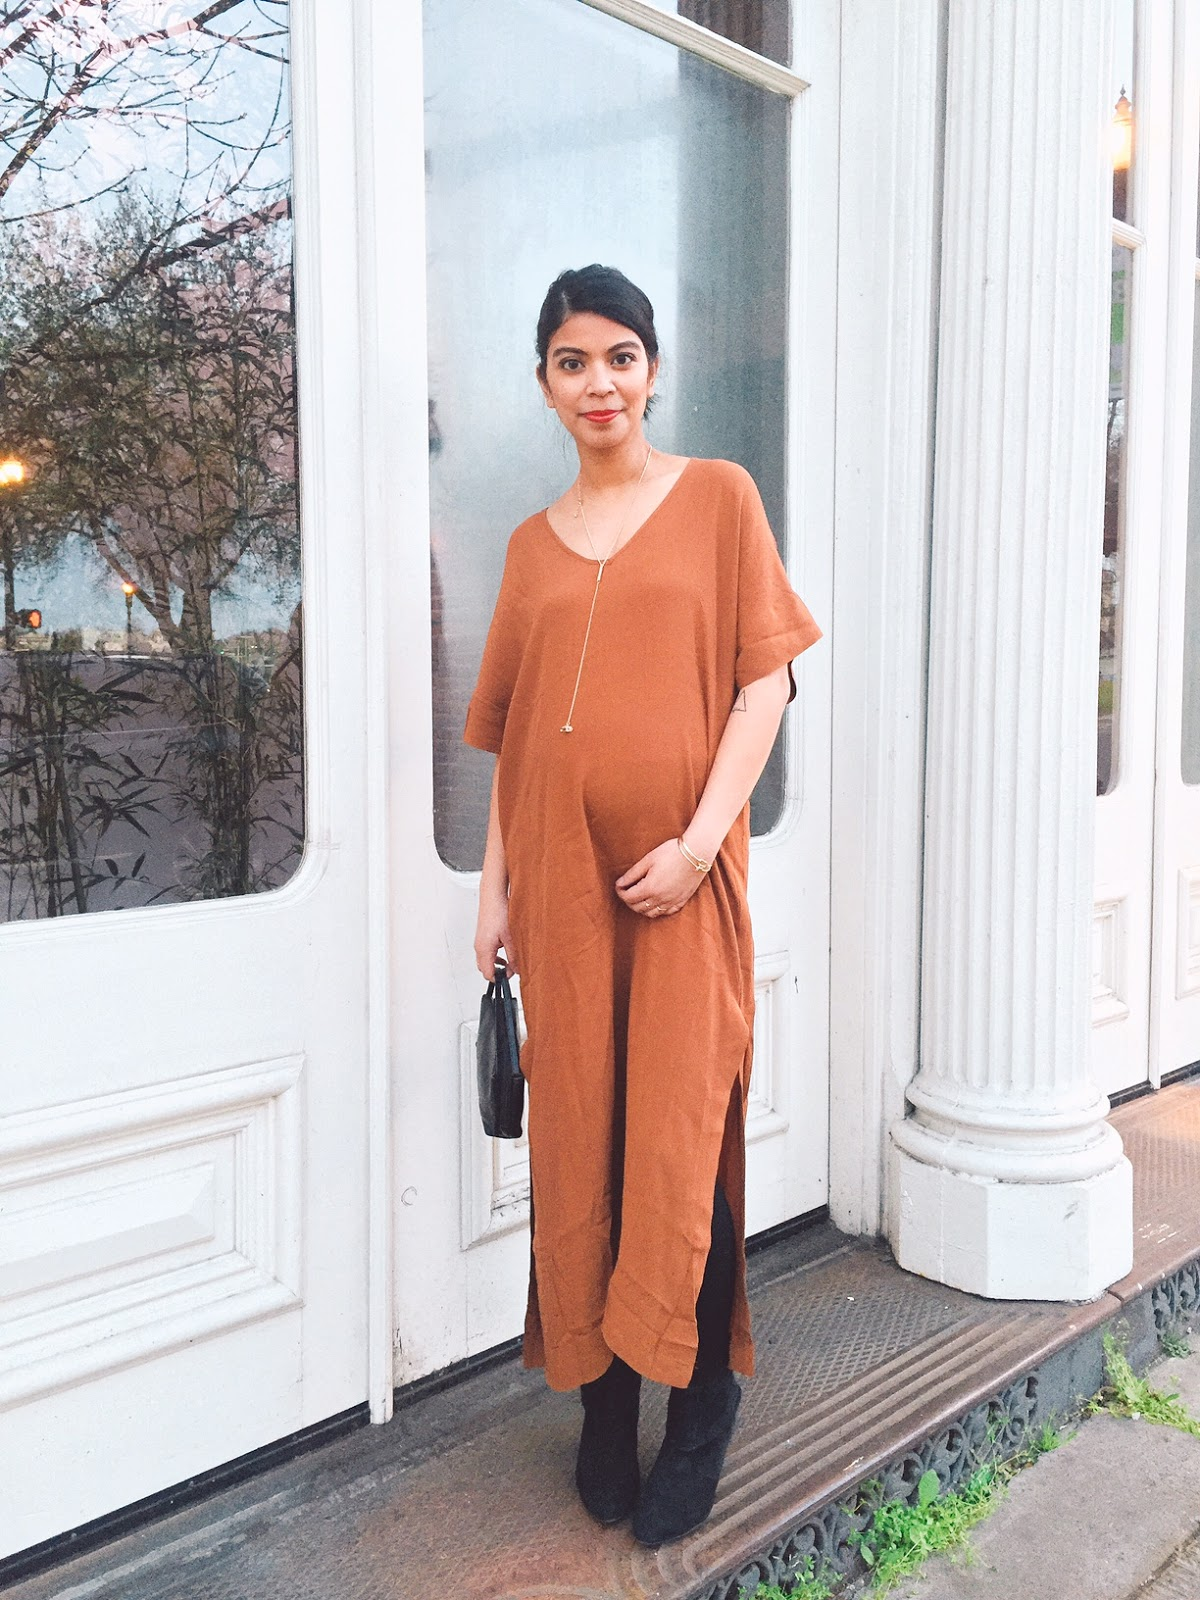 thirty bucks, affordable  fashion, the ptown girls, preggonista, pregnancy style, brown midi dress, black ankle boots, portland fashion blogger,